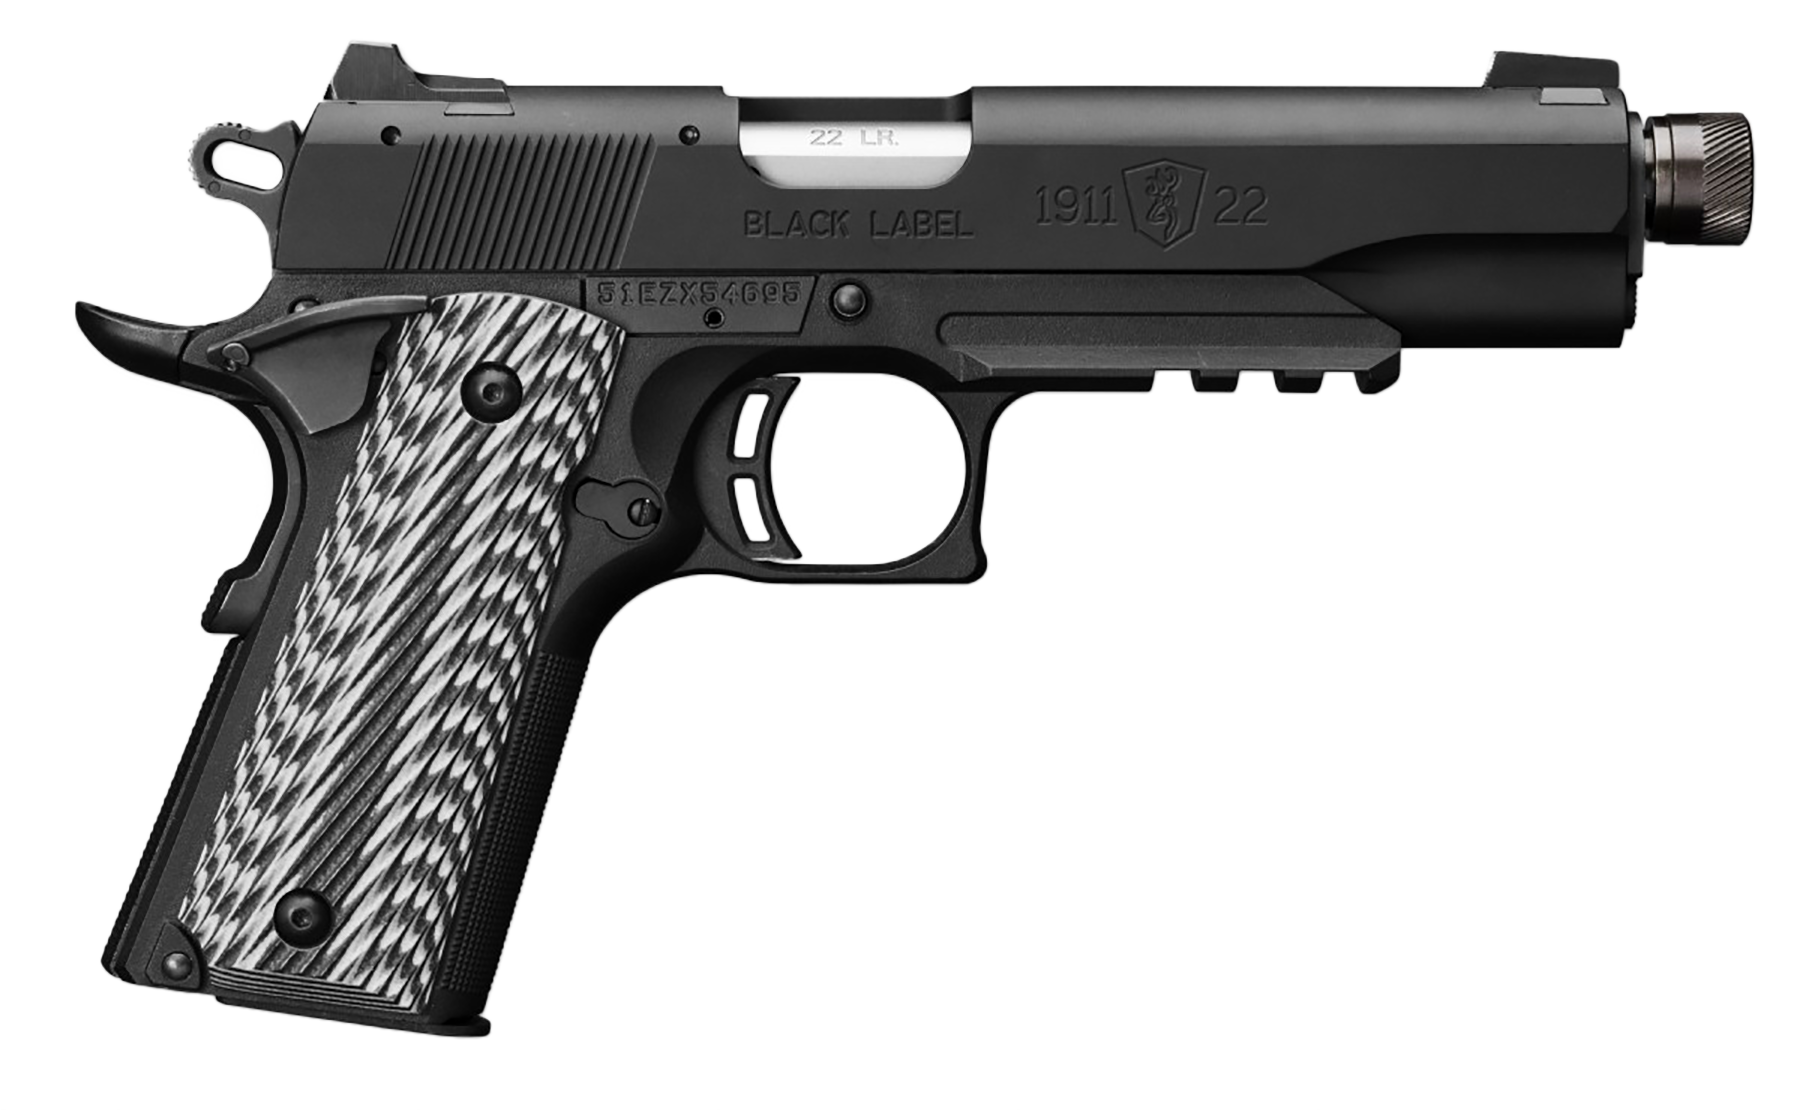 Image of Browning 1911-22 Black G10 Grips 4.8' Threaded Barrel, Silerncer Ready